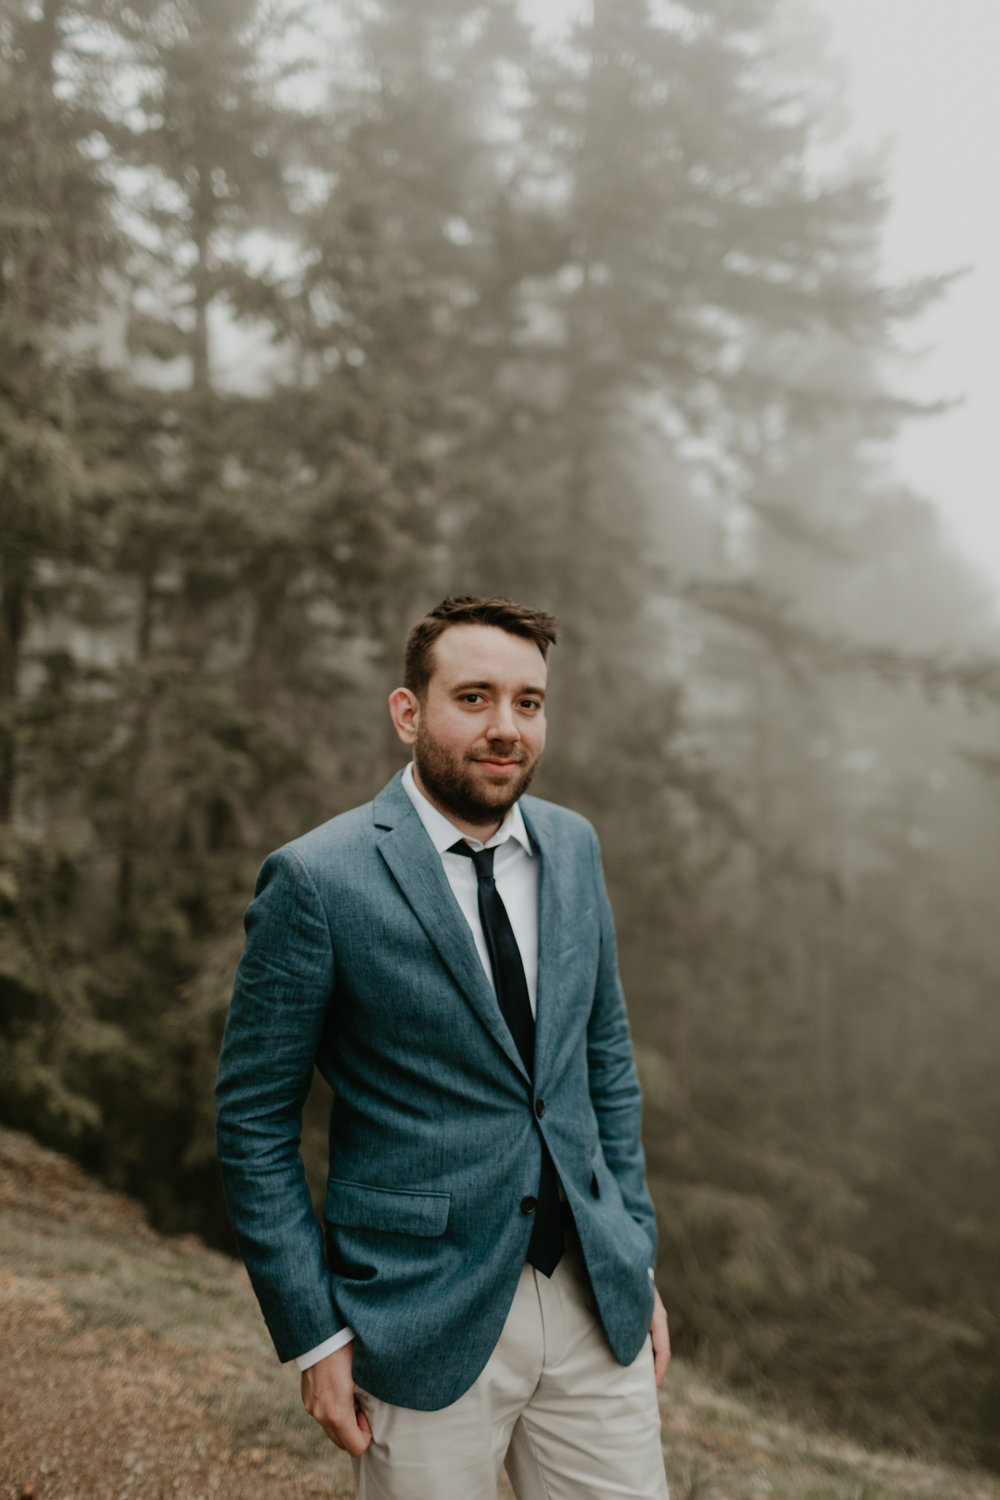 PNW-elopement-wedding-engagement-olympic national park-port angeles-hurricane ridge-lake crescent-kayla dawn photography- photographer-photography-kayladawnphoto-149.jpg